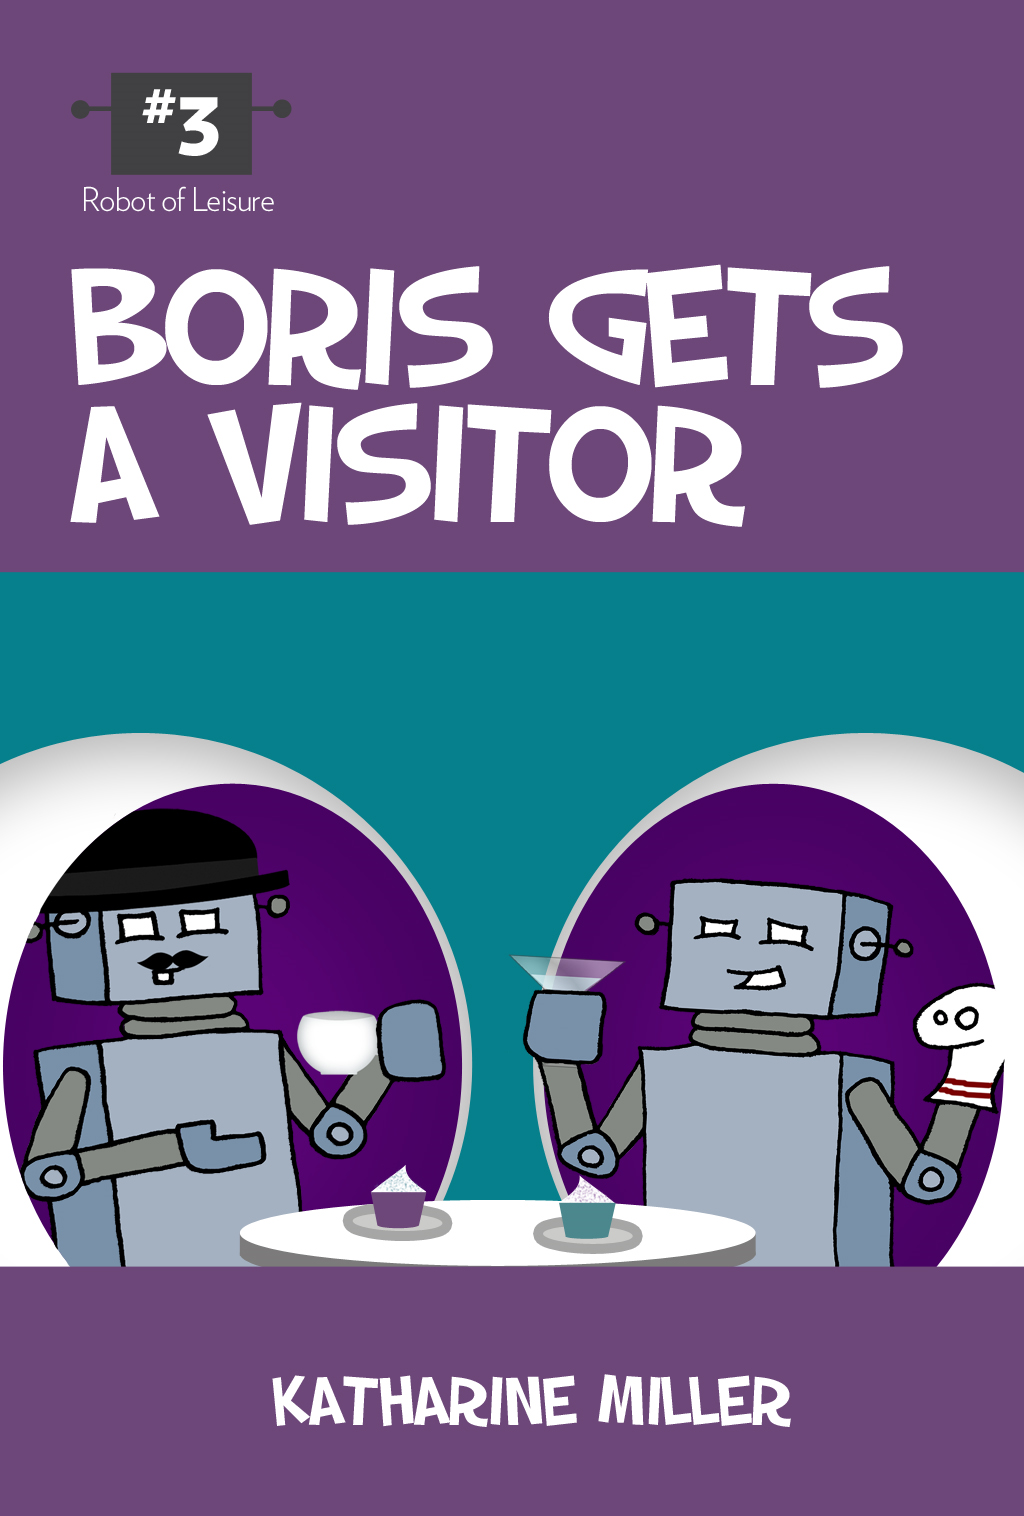 Boris Gets a Visitor